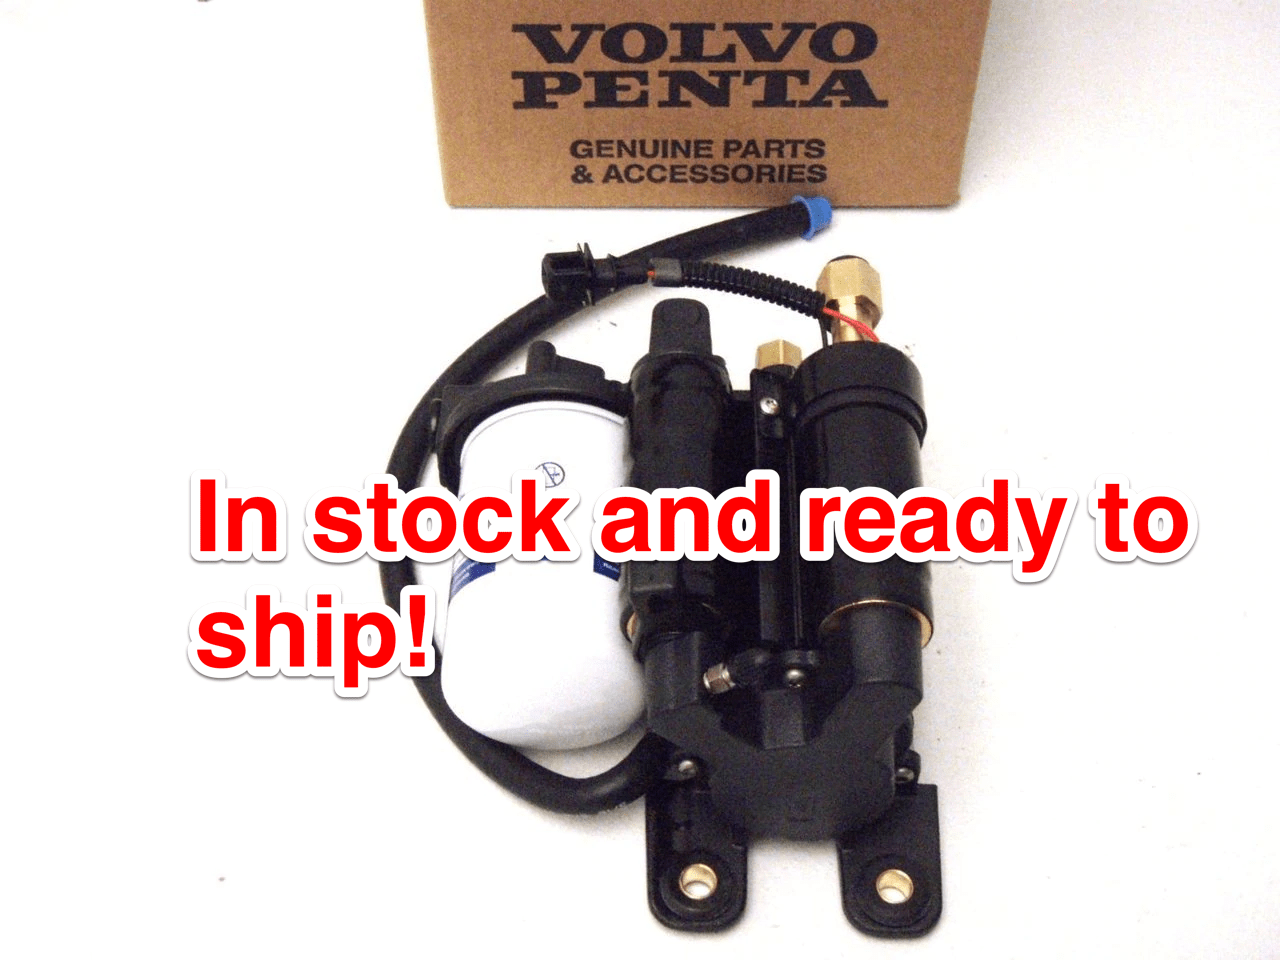 849 99 genuine volvo fuel pump 21608511 in stock ready to ship [ 1280 x 960 Pixel ]